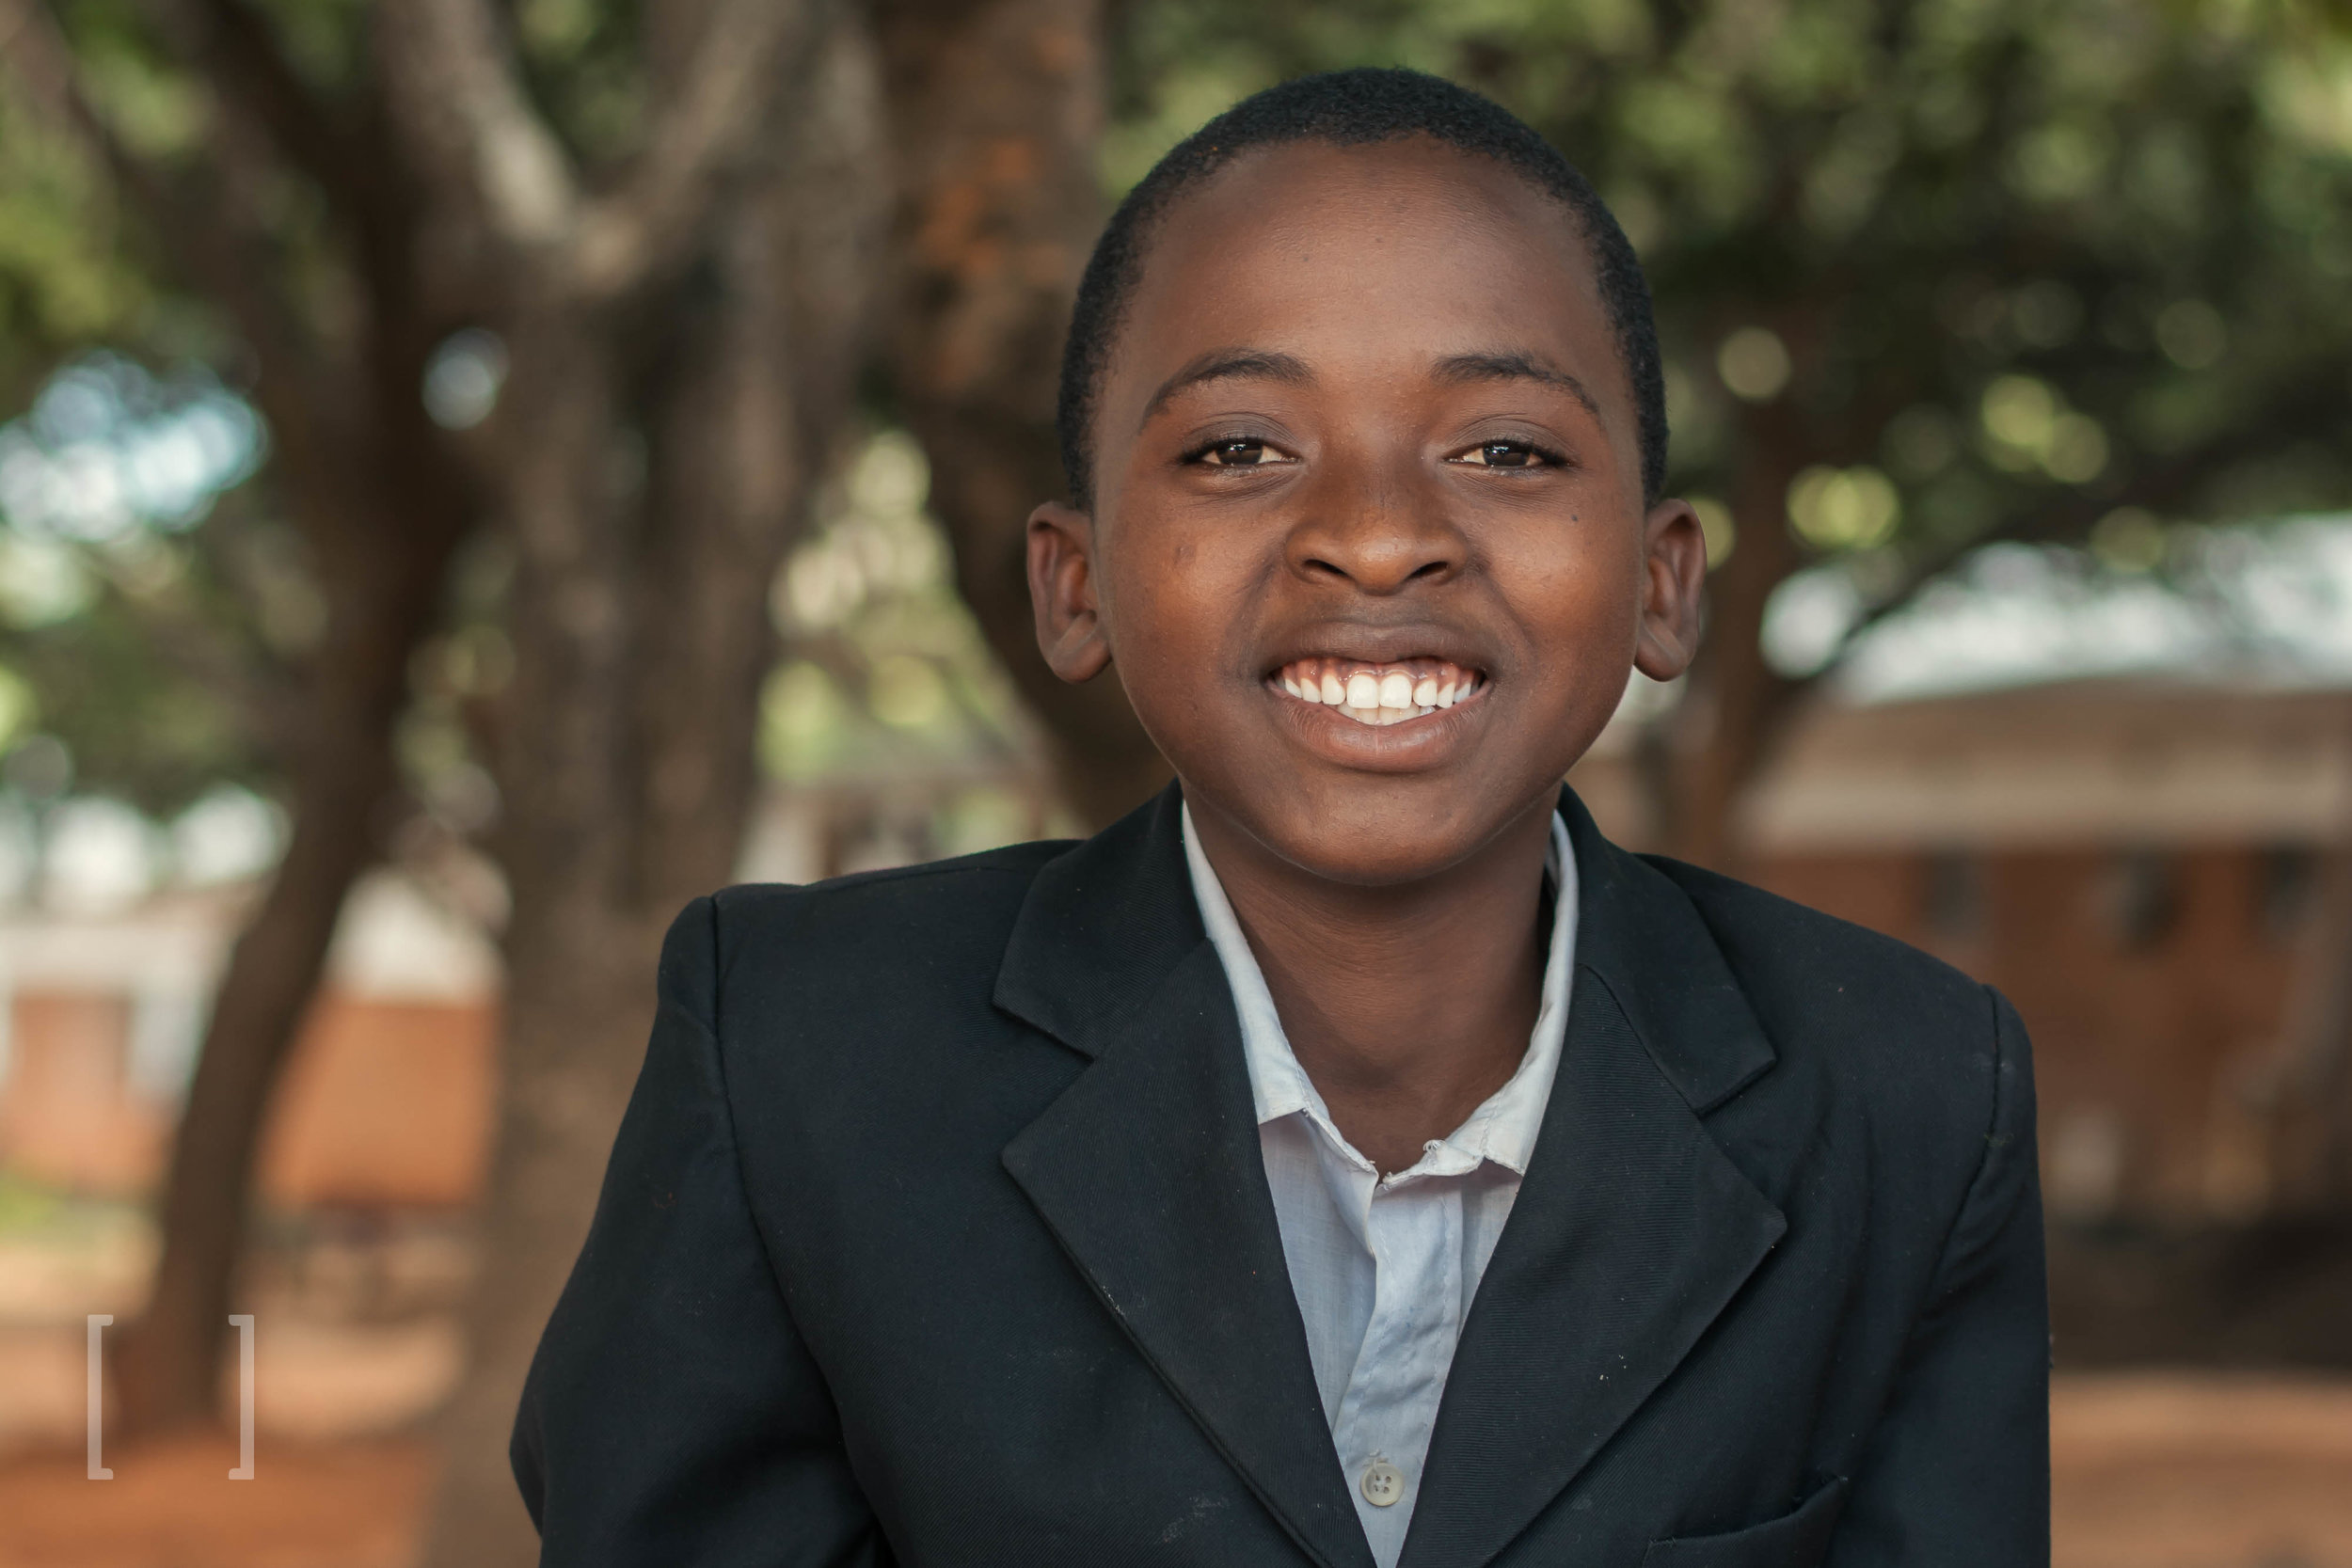 Welason - Welason is an avid reader and looks forward to class everyday. Become a sponsor & help provide him with books and educational materials!